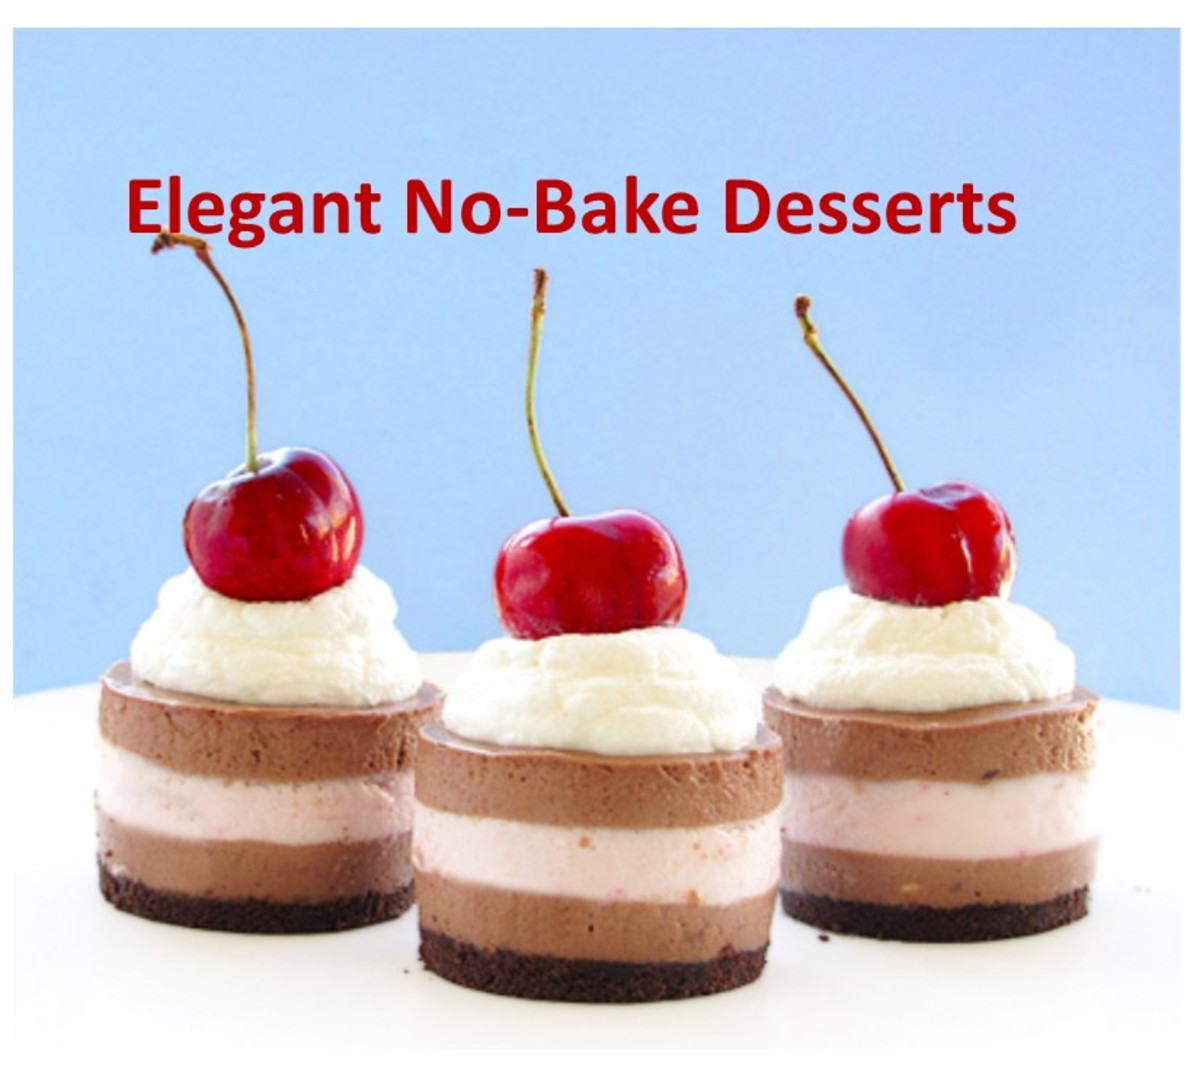 Easy, tasty, elegant no-bake cheesecake